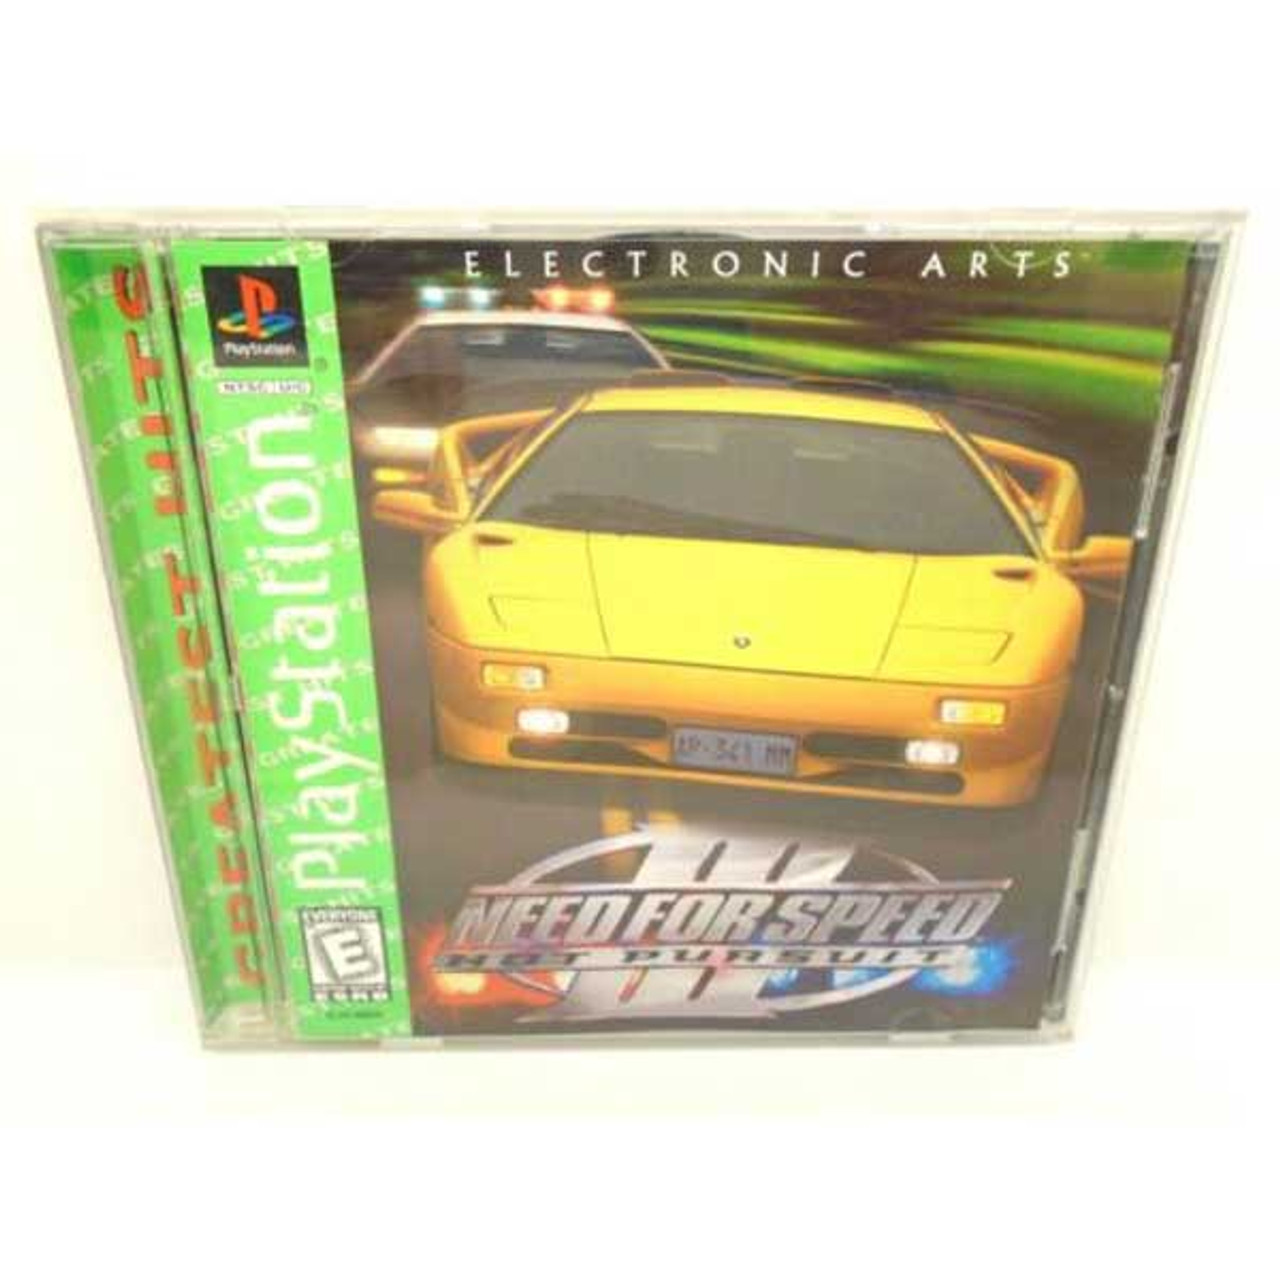 Complete Need For Speed Iii Hot Pursuit Greatest Hits Ps1 Game For